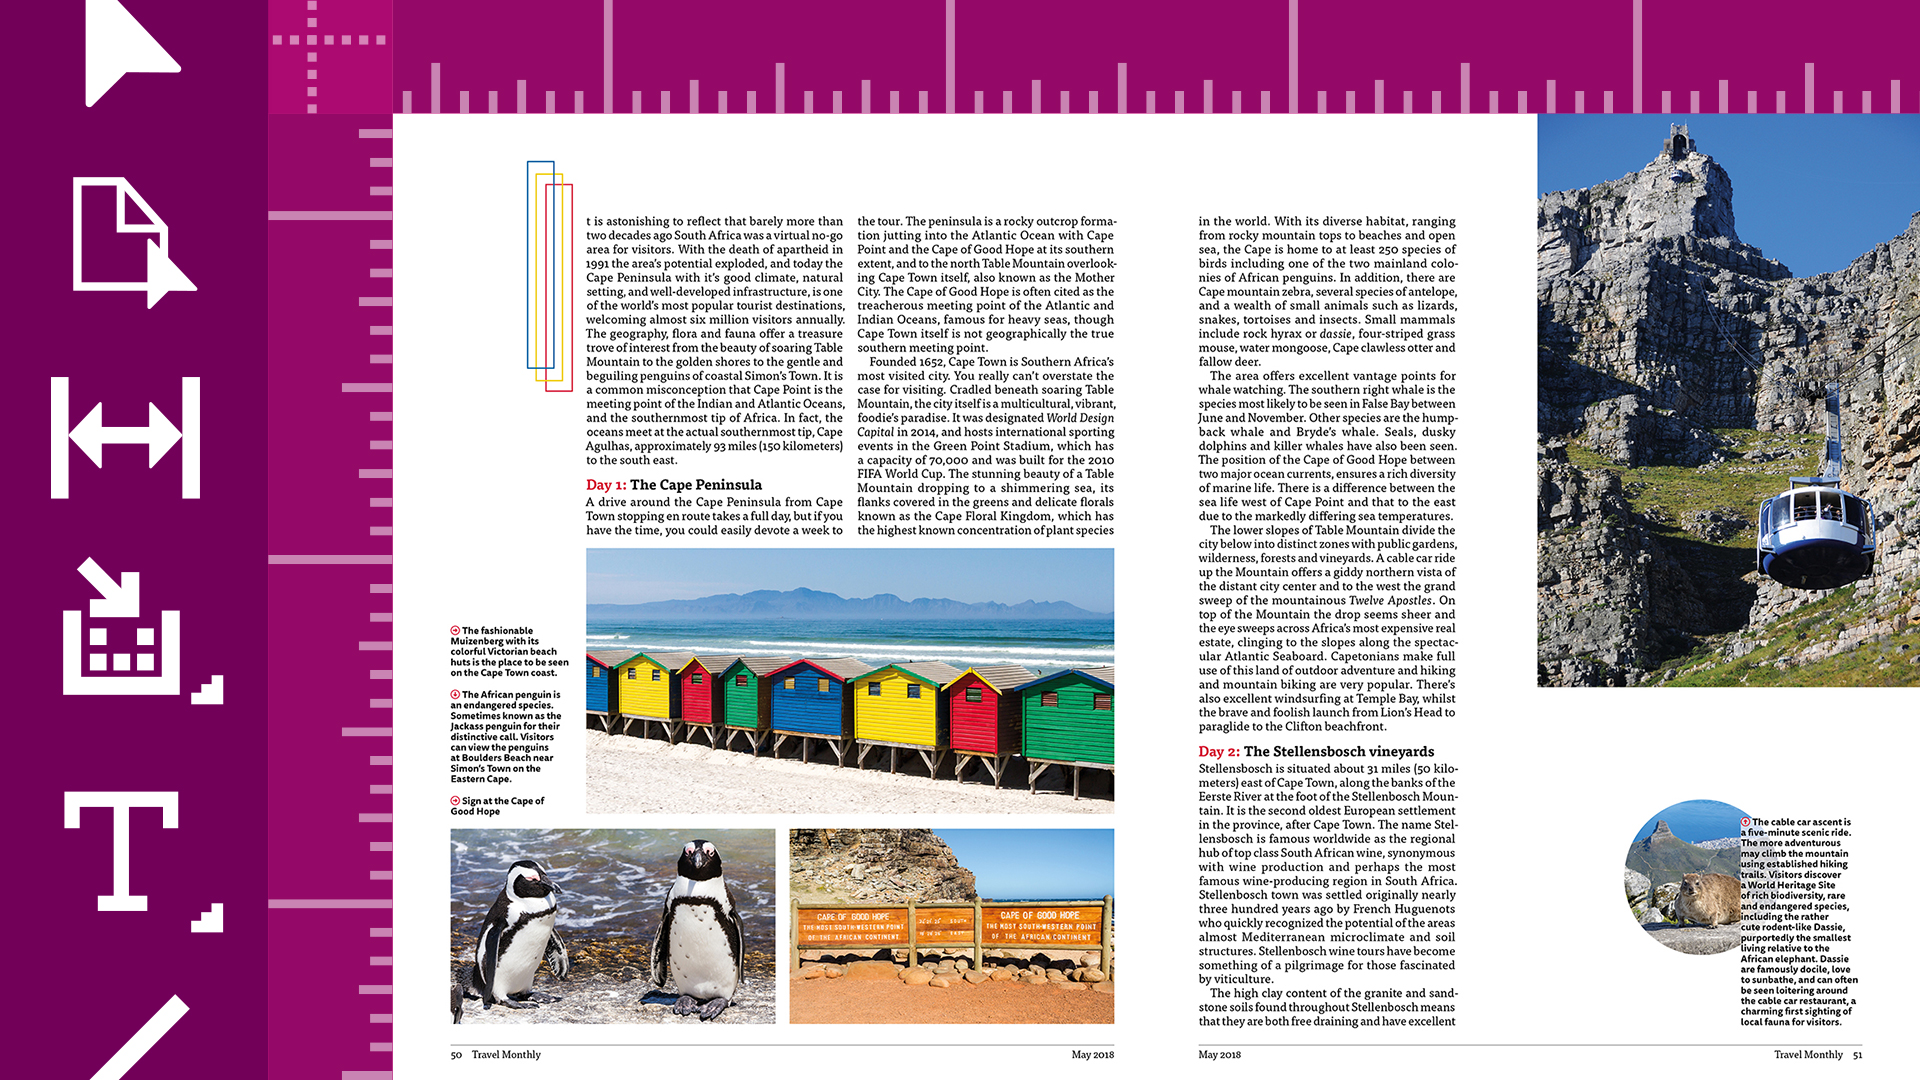 InDesign CC: Designing a Magazine Layout